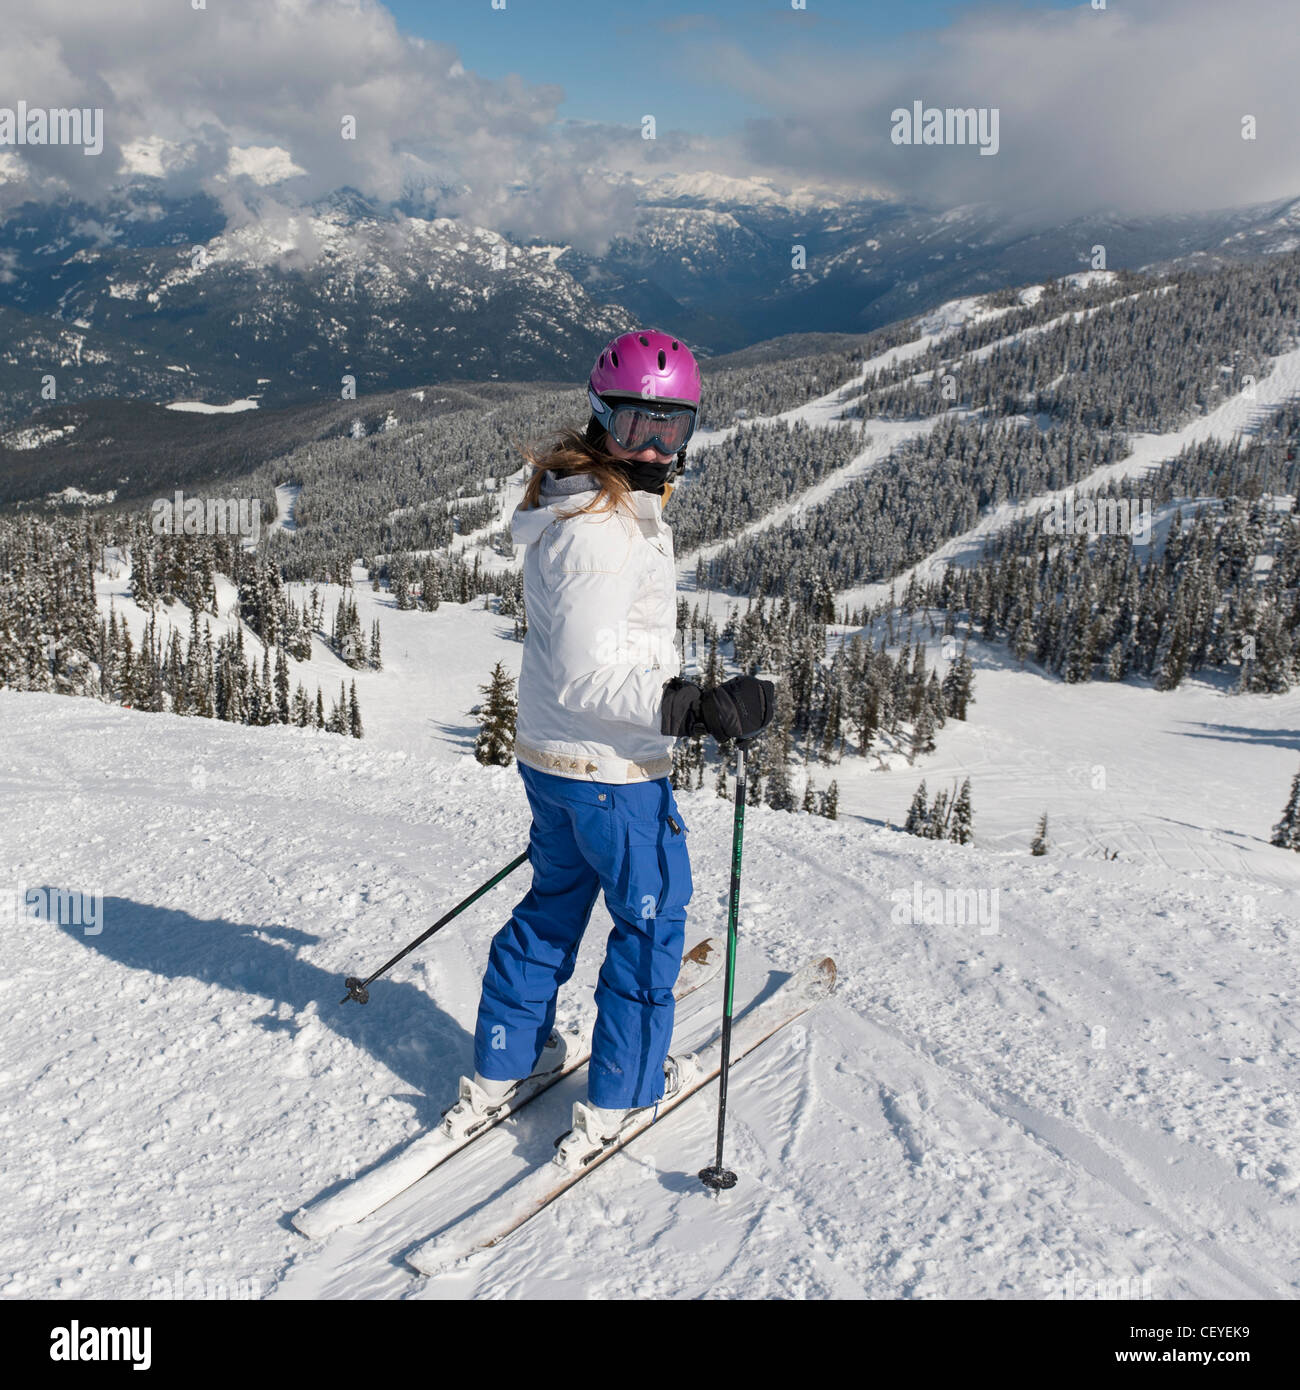 a skier on a ski trail with forests and mountains in the background; whistler british columbia canada - Stock Image